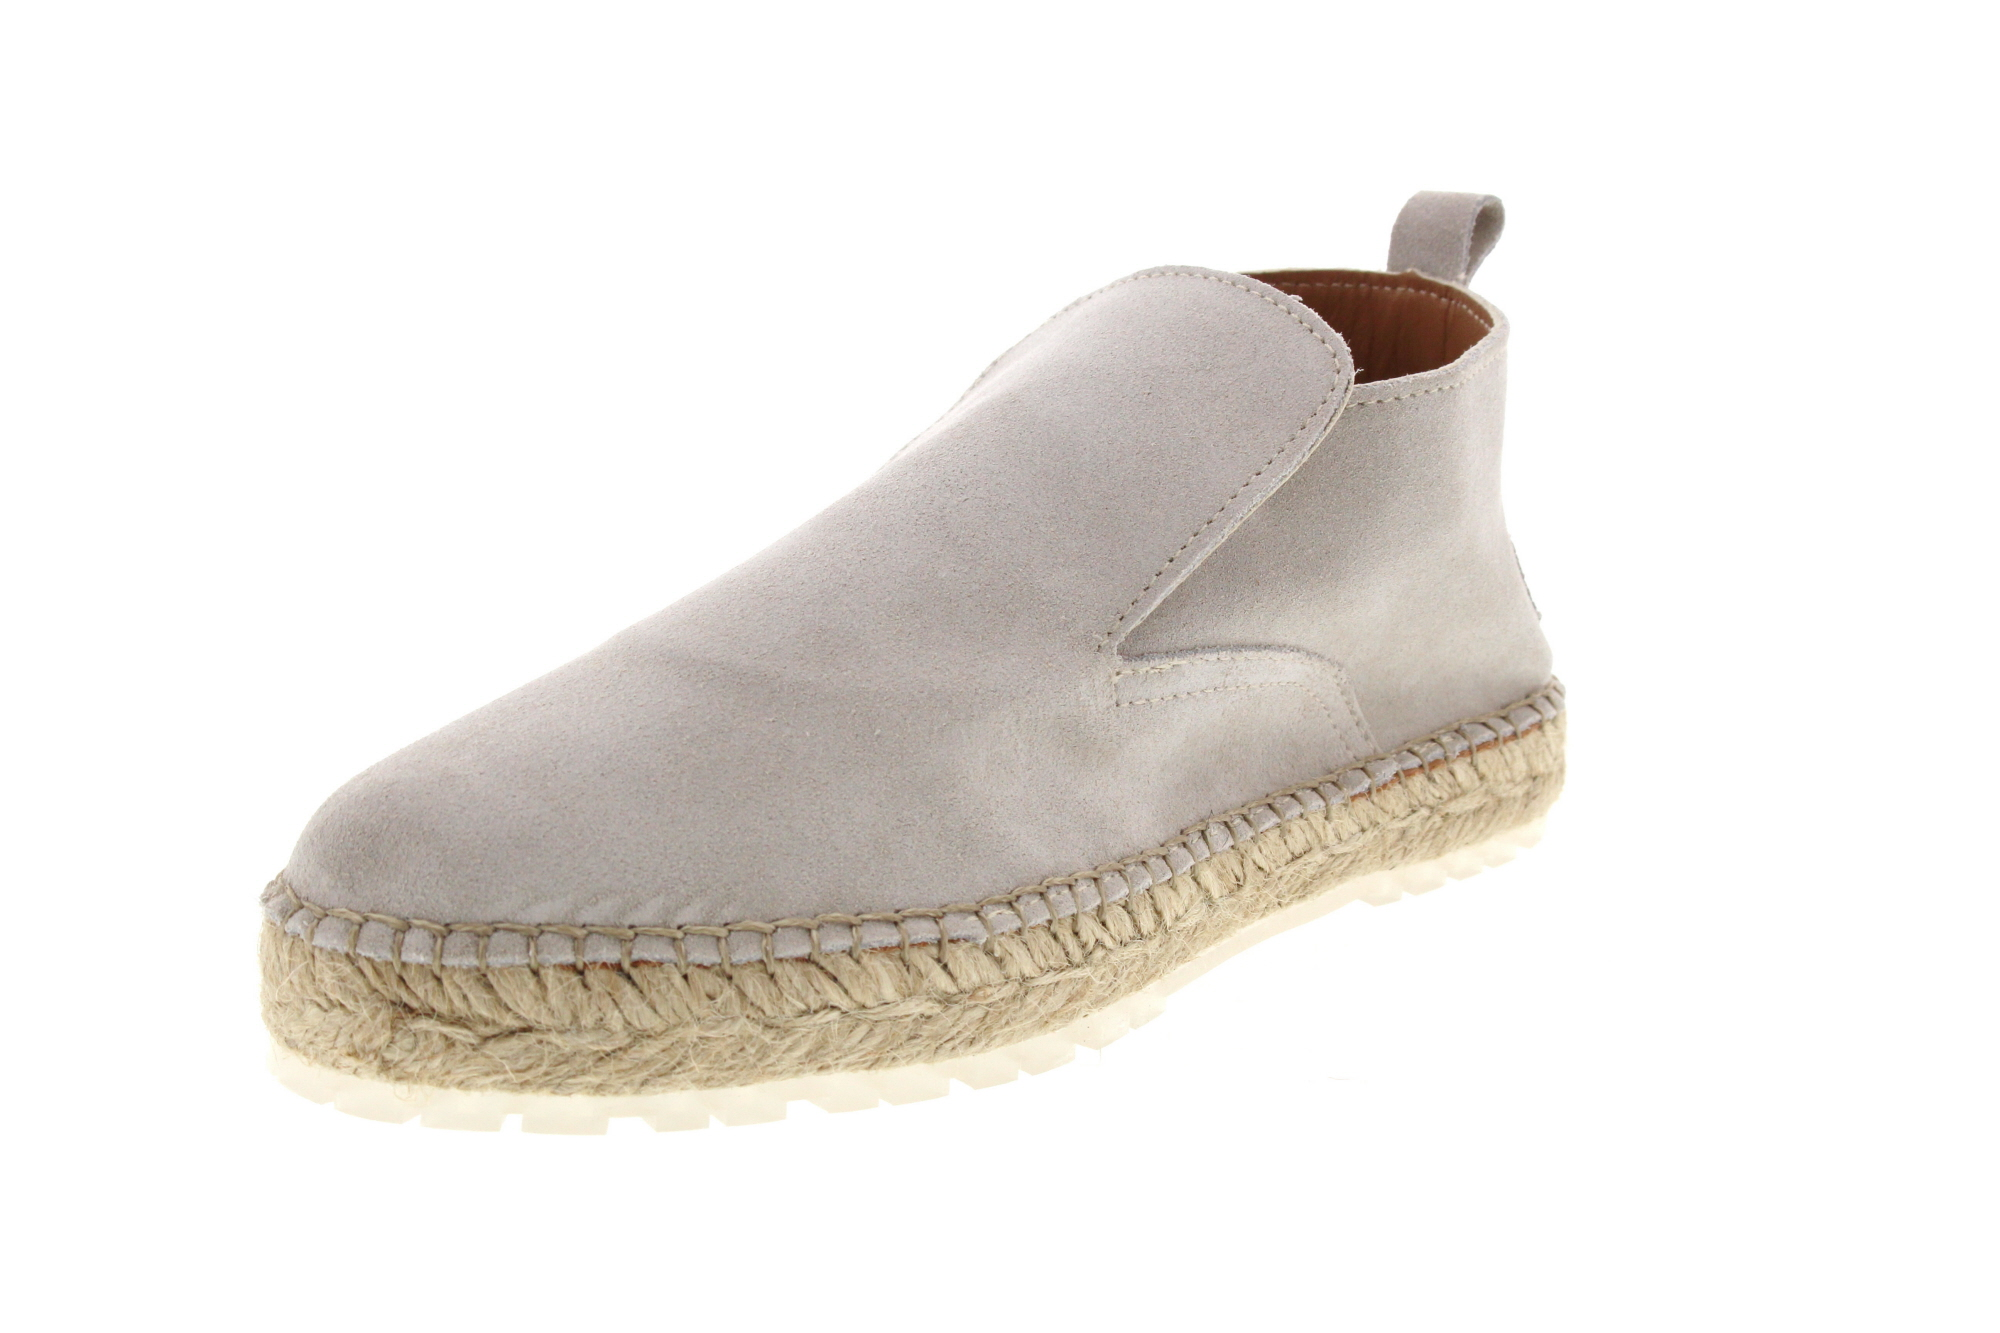 SHABBIES AMSTERDAM - Espadrilles 152020007 - off white_0